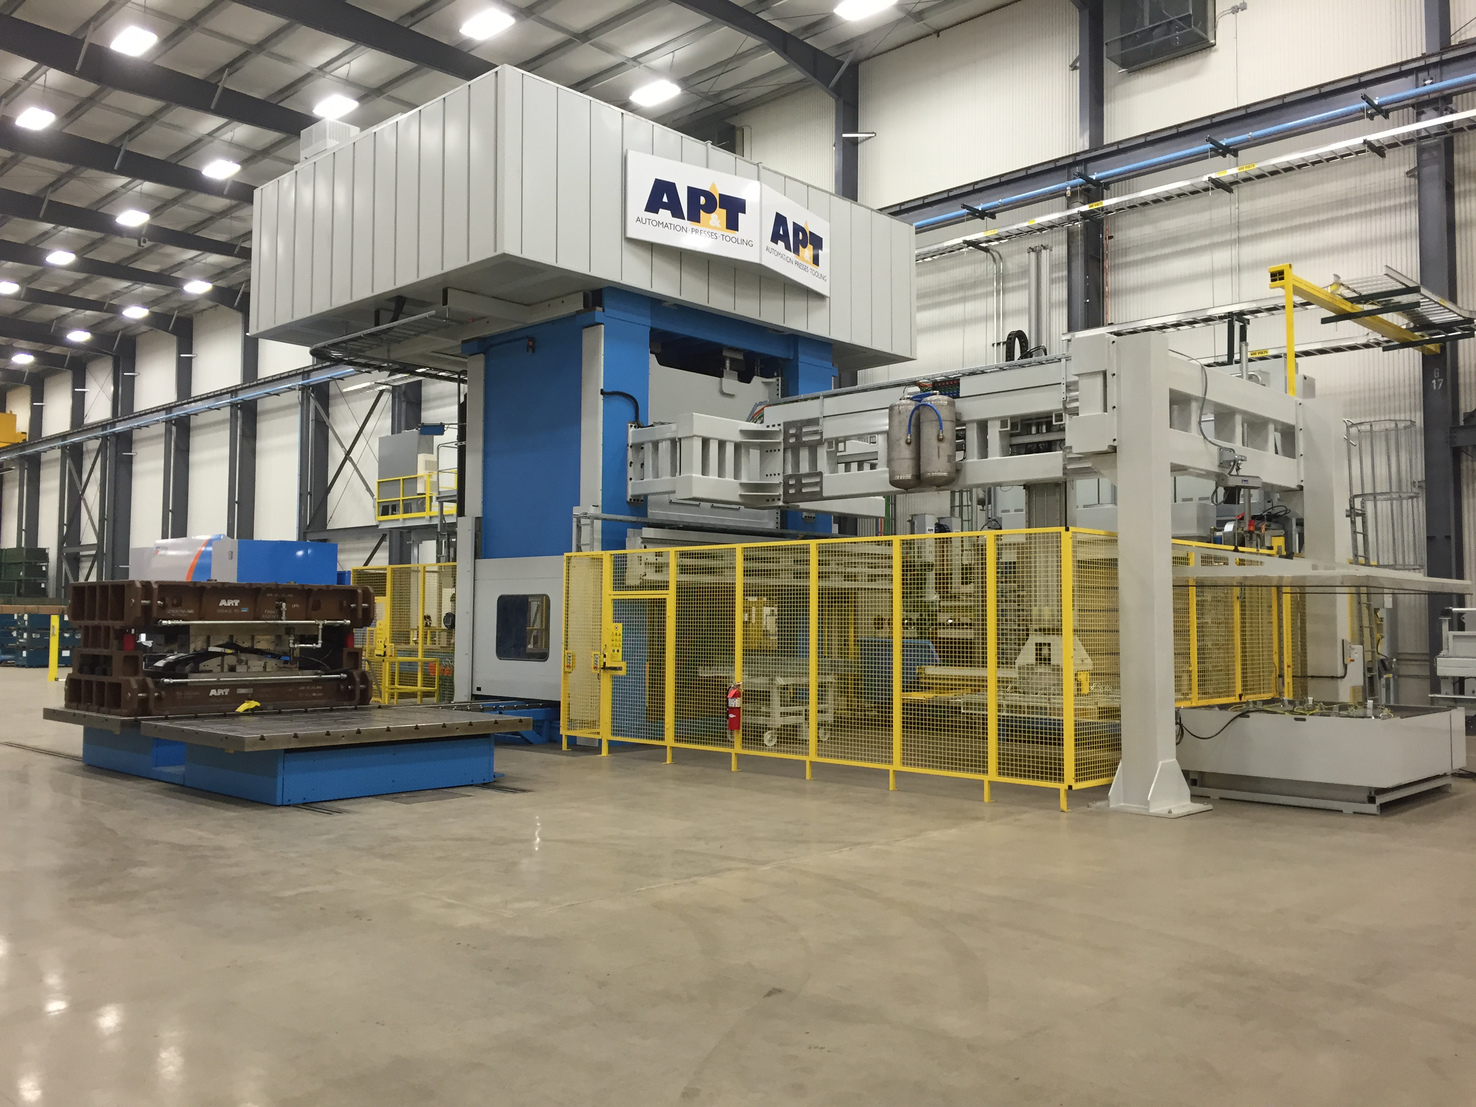 New press hardening line from AP&T in operation at DTG in Michigan